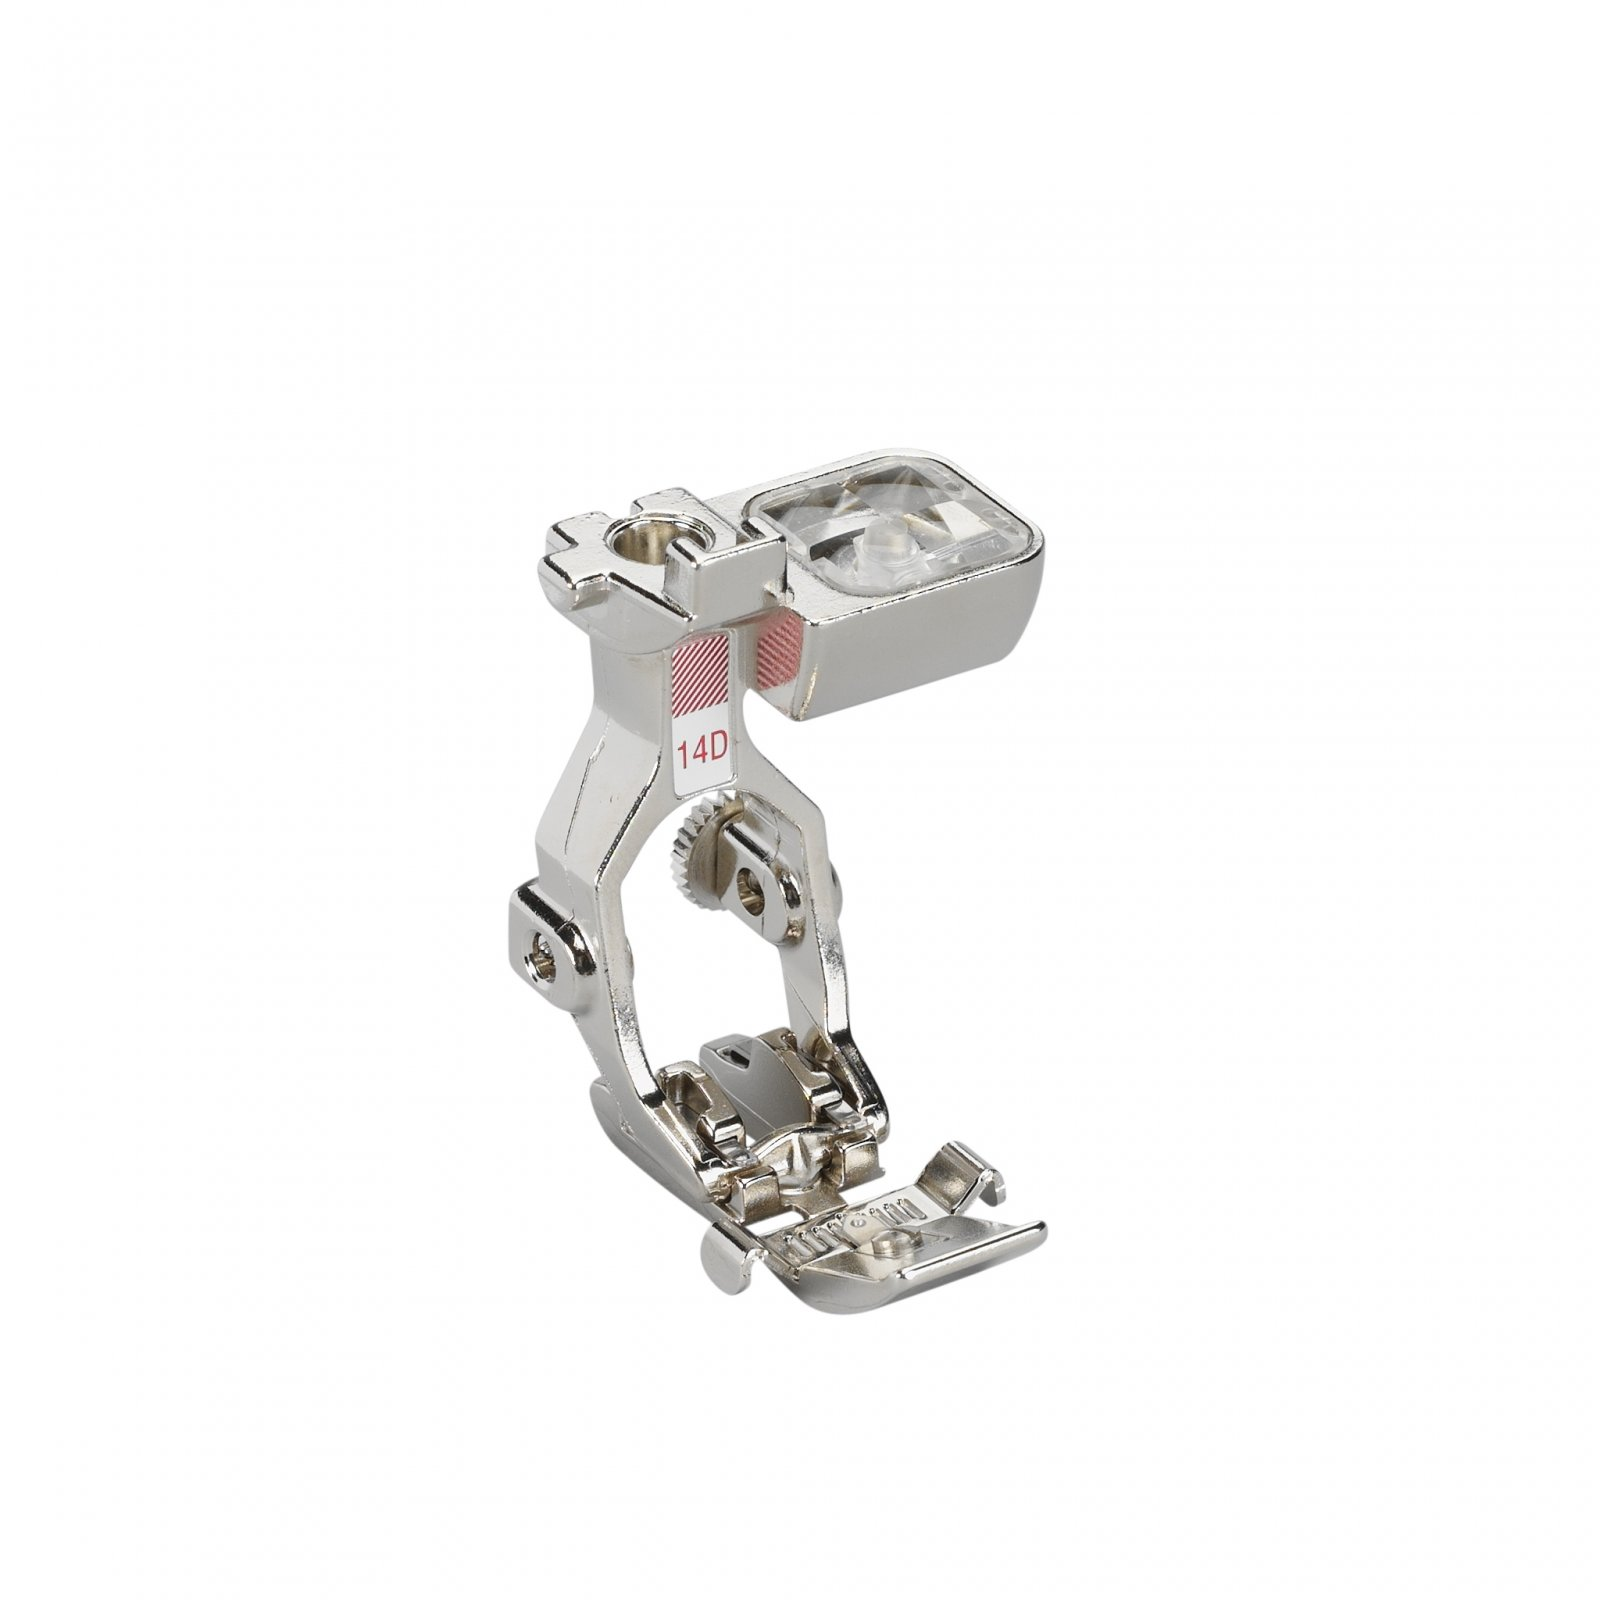 #14D Dual feed Zipper foot with guide